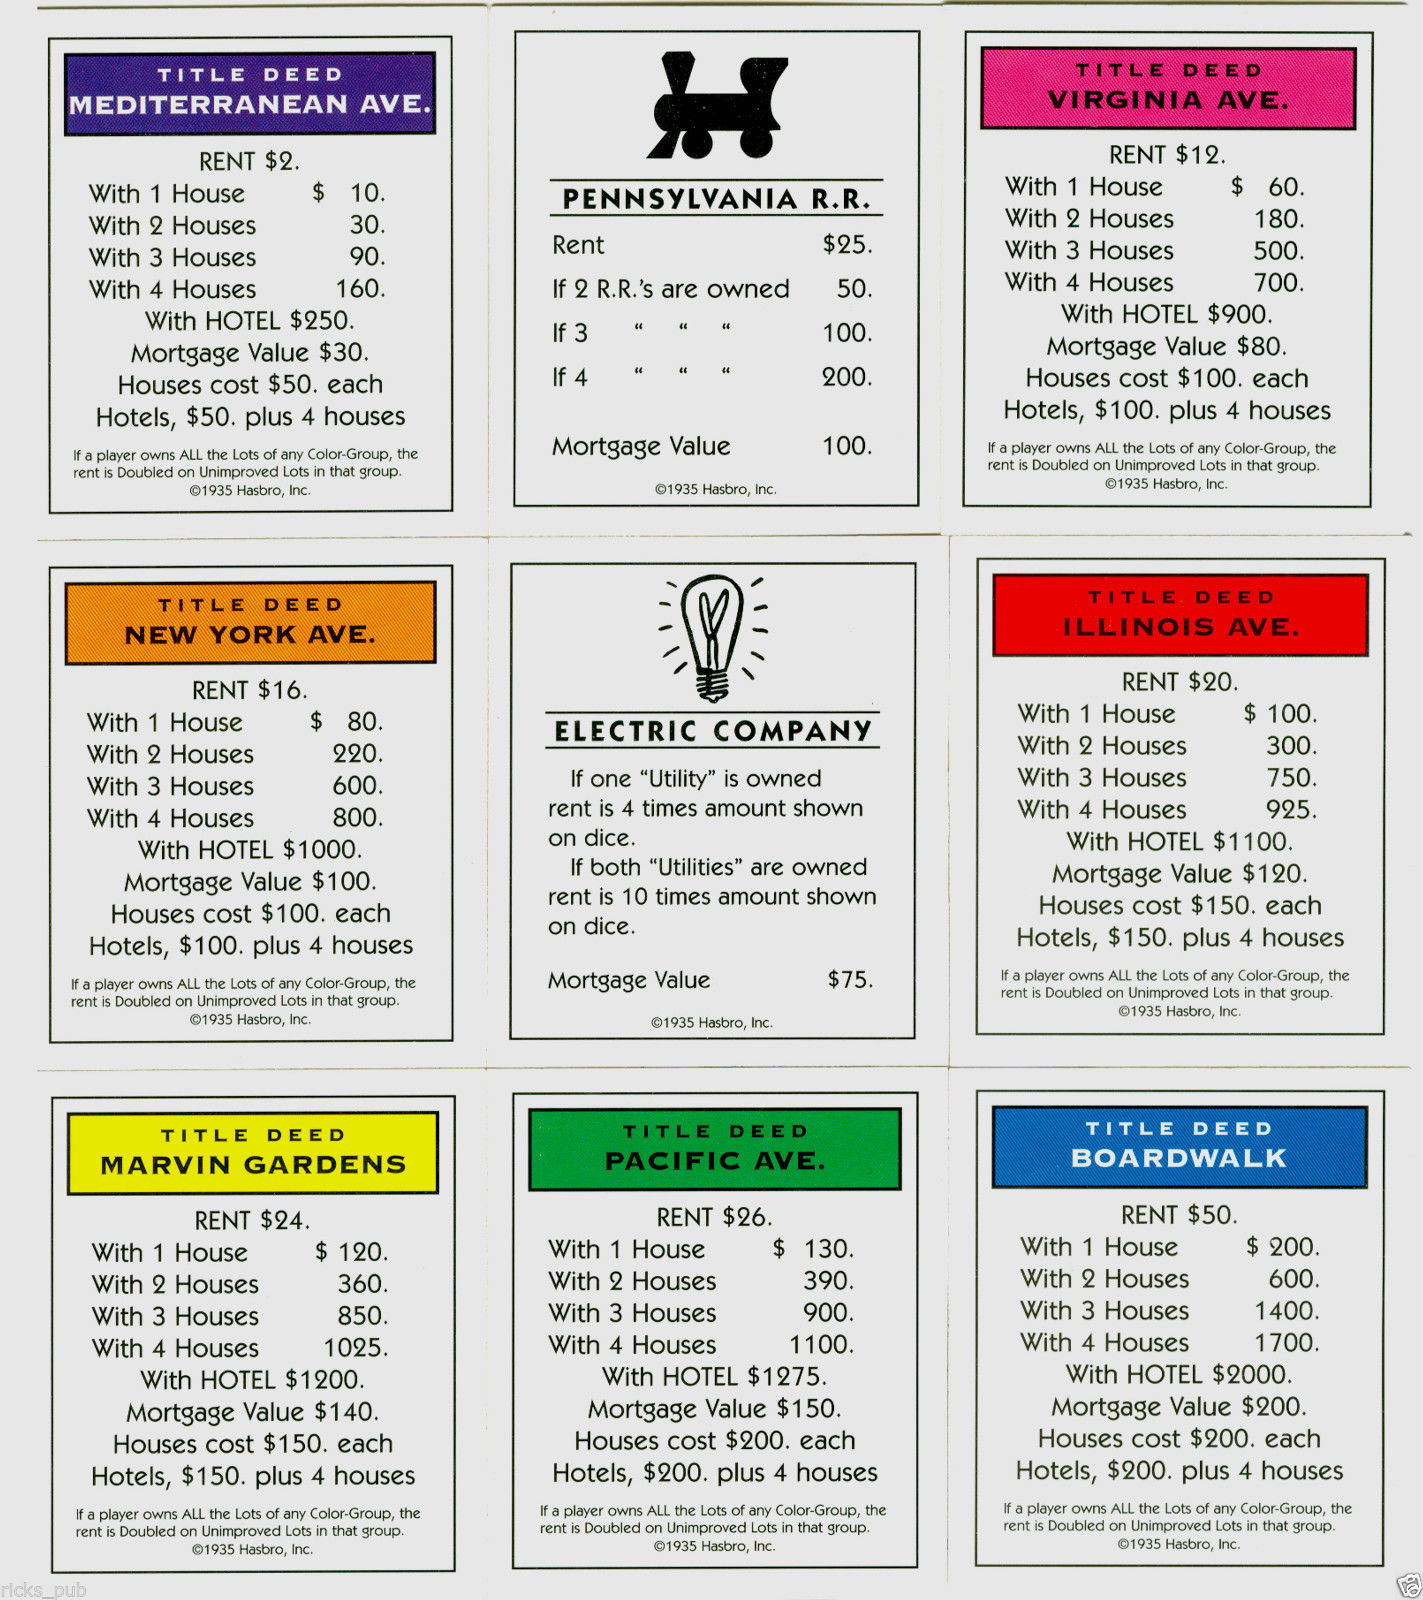 Hilaire image for printable monopoly property cards